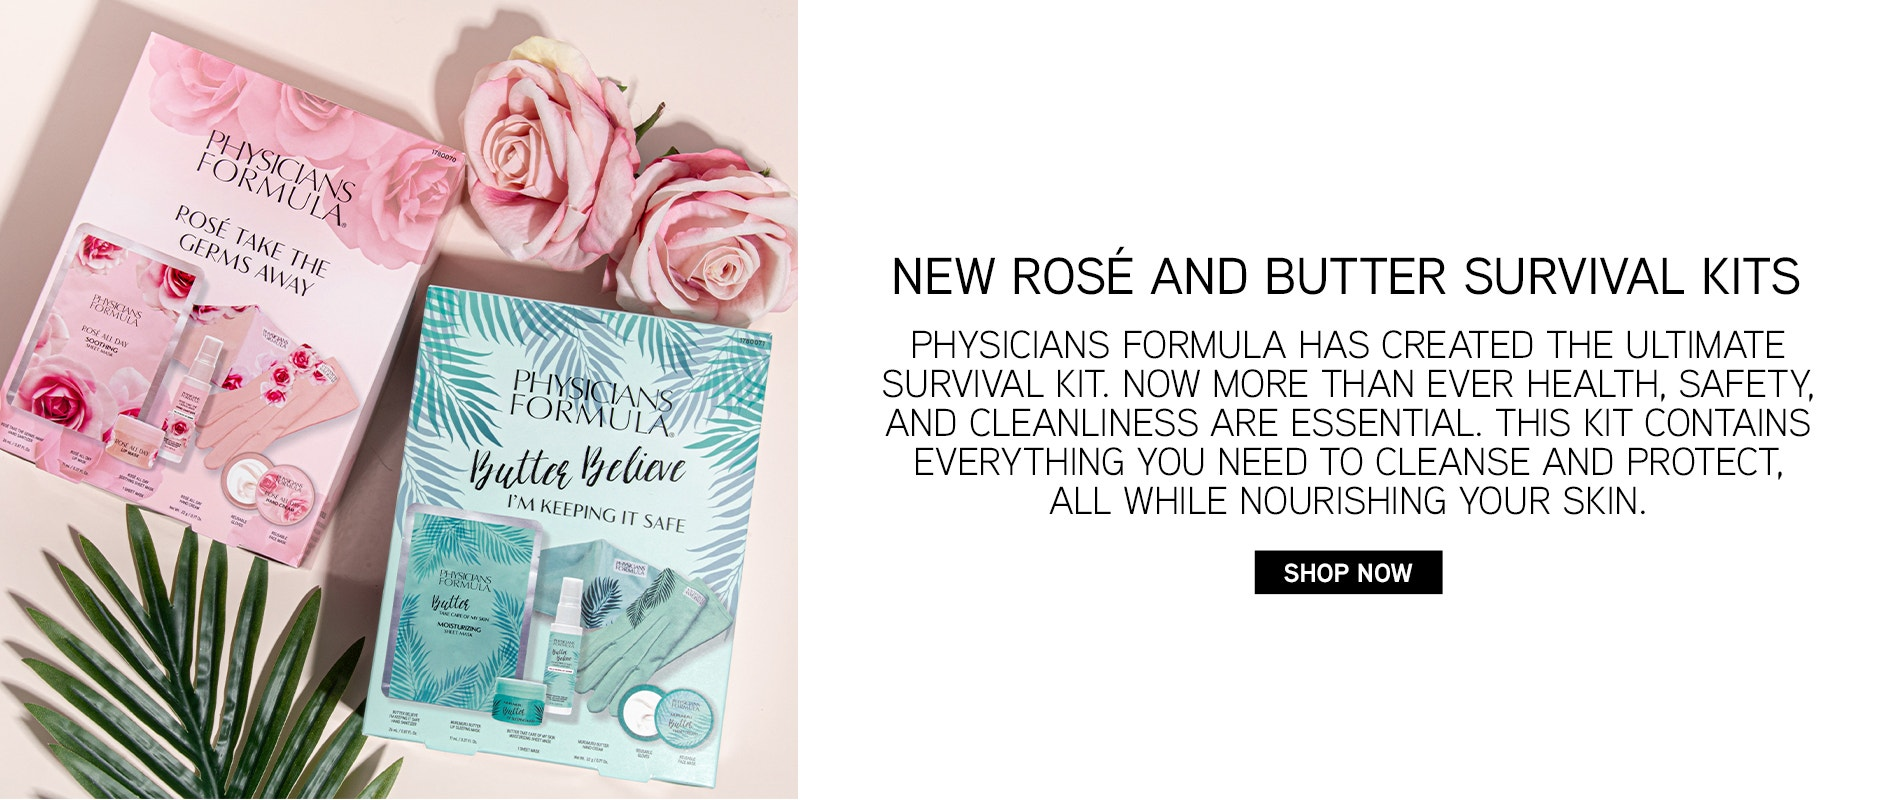 New Rosé and Butter Survival Kits | Physicians Formula | Product in box front facing with pink background